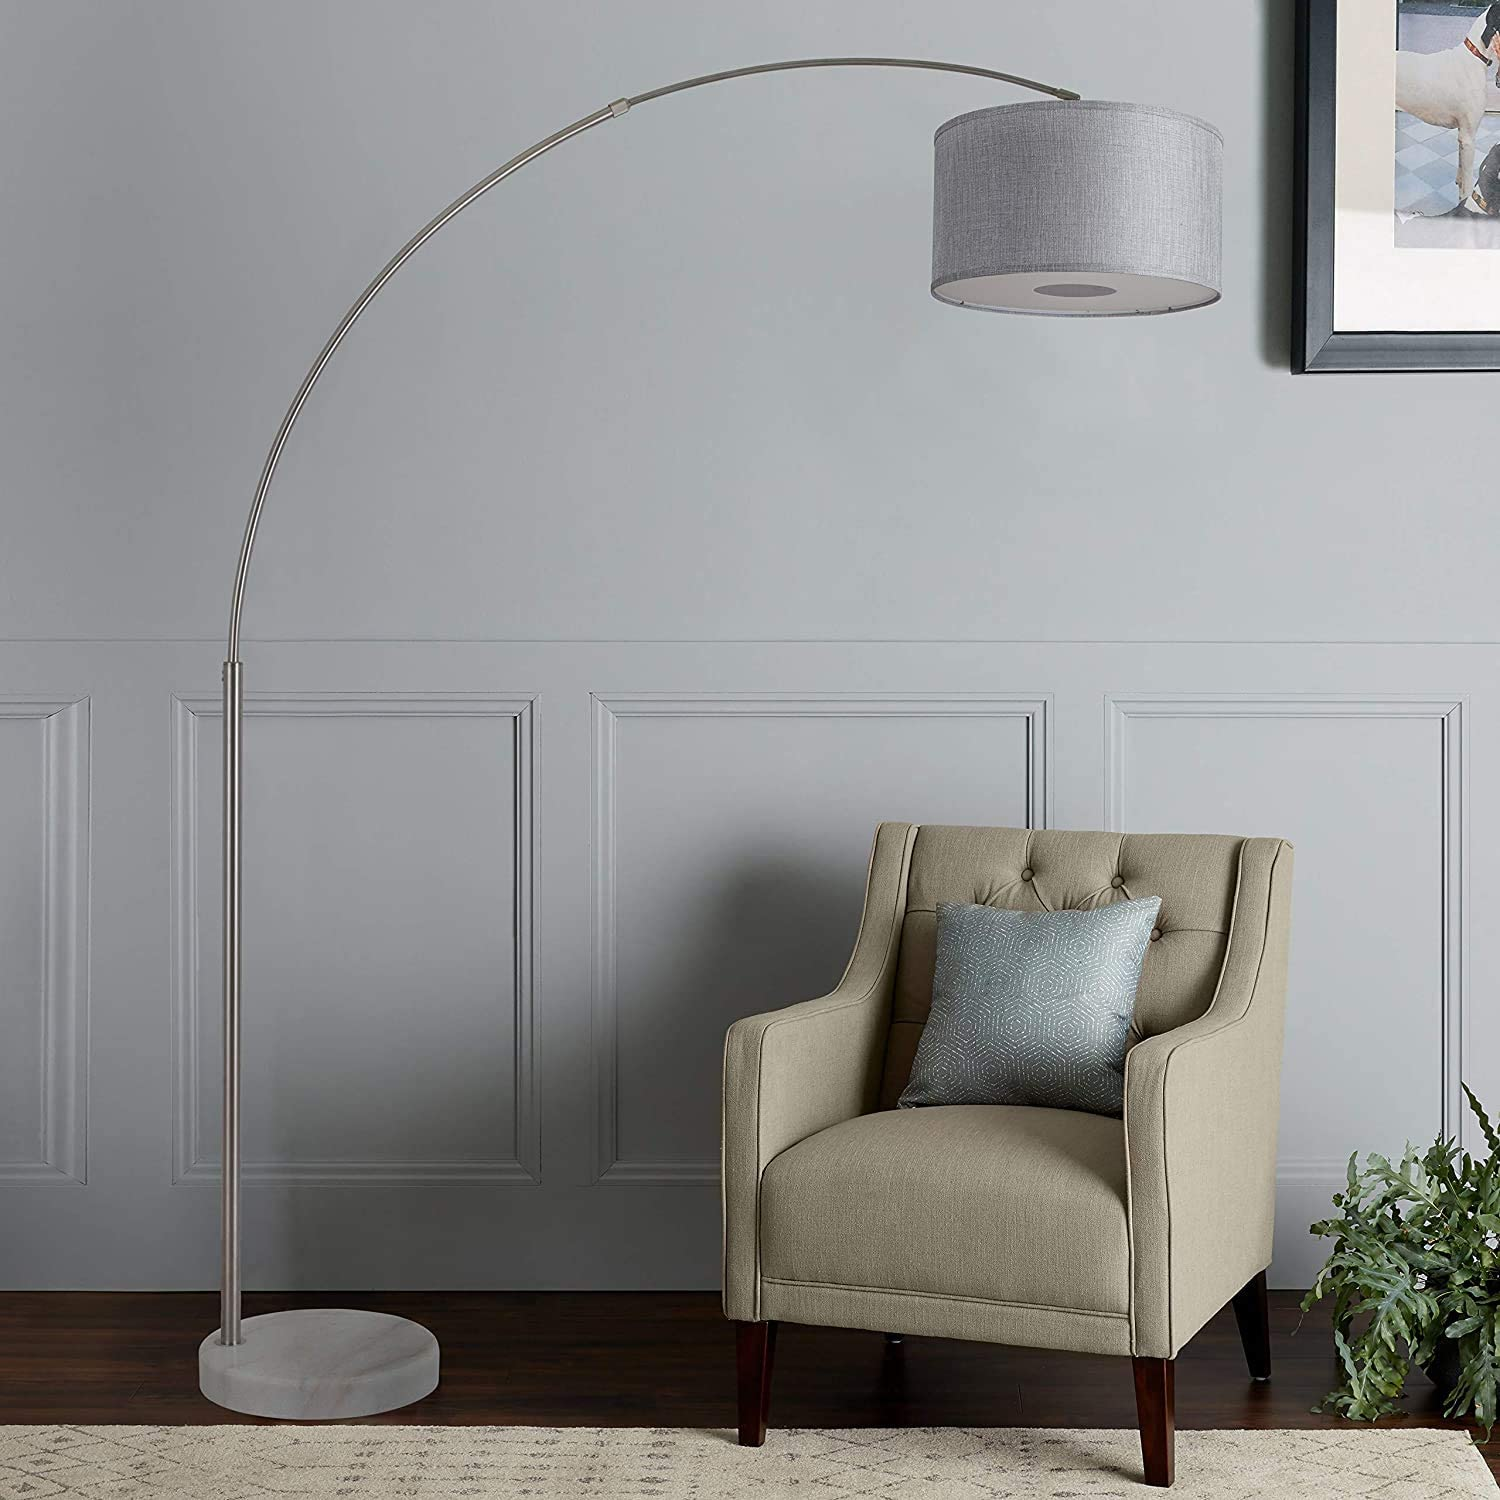 Large Steel Adjustable Arching Floor Lamp with Marble Base Grey Shade 81 H